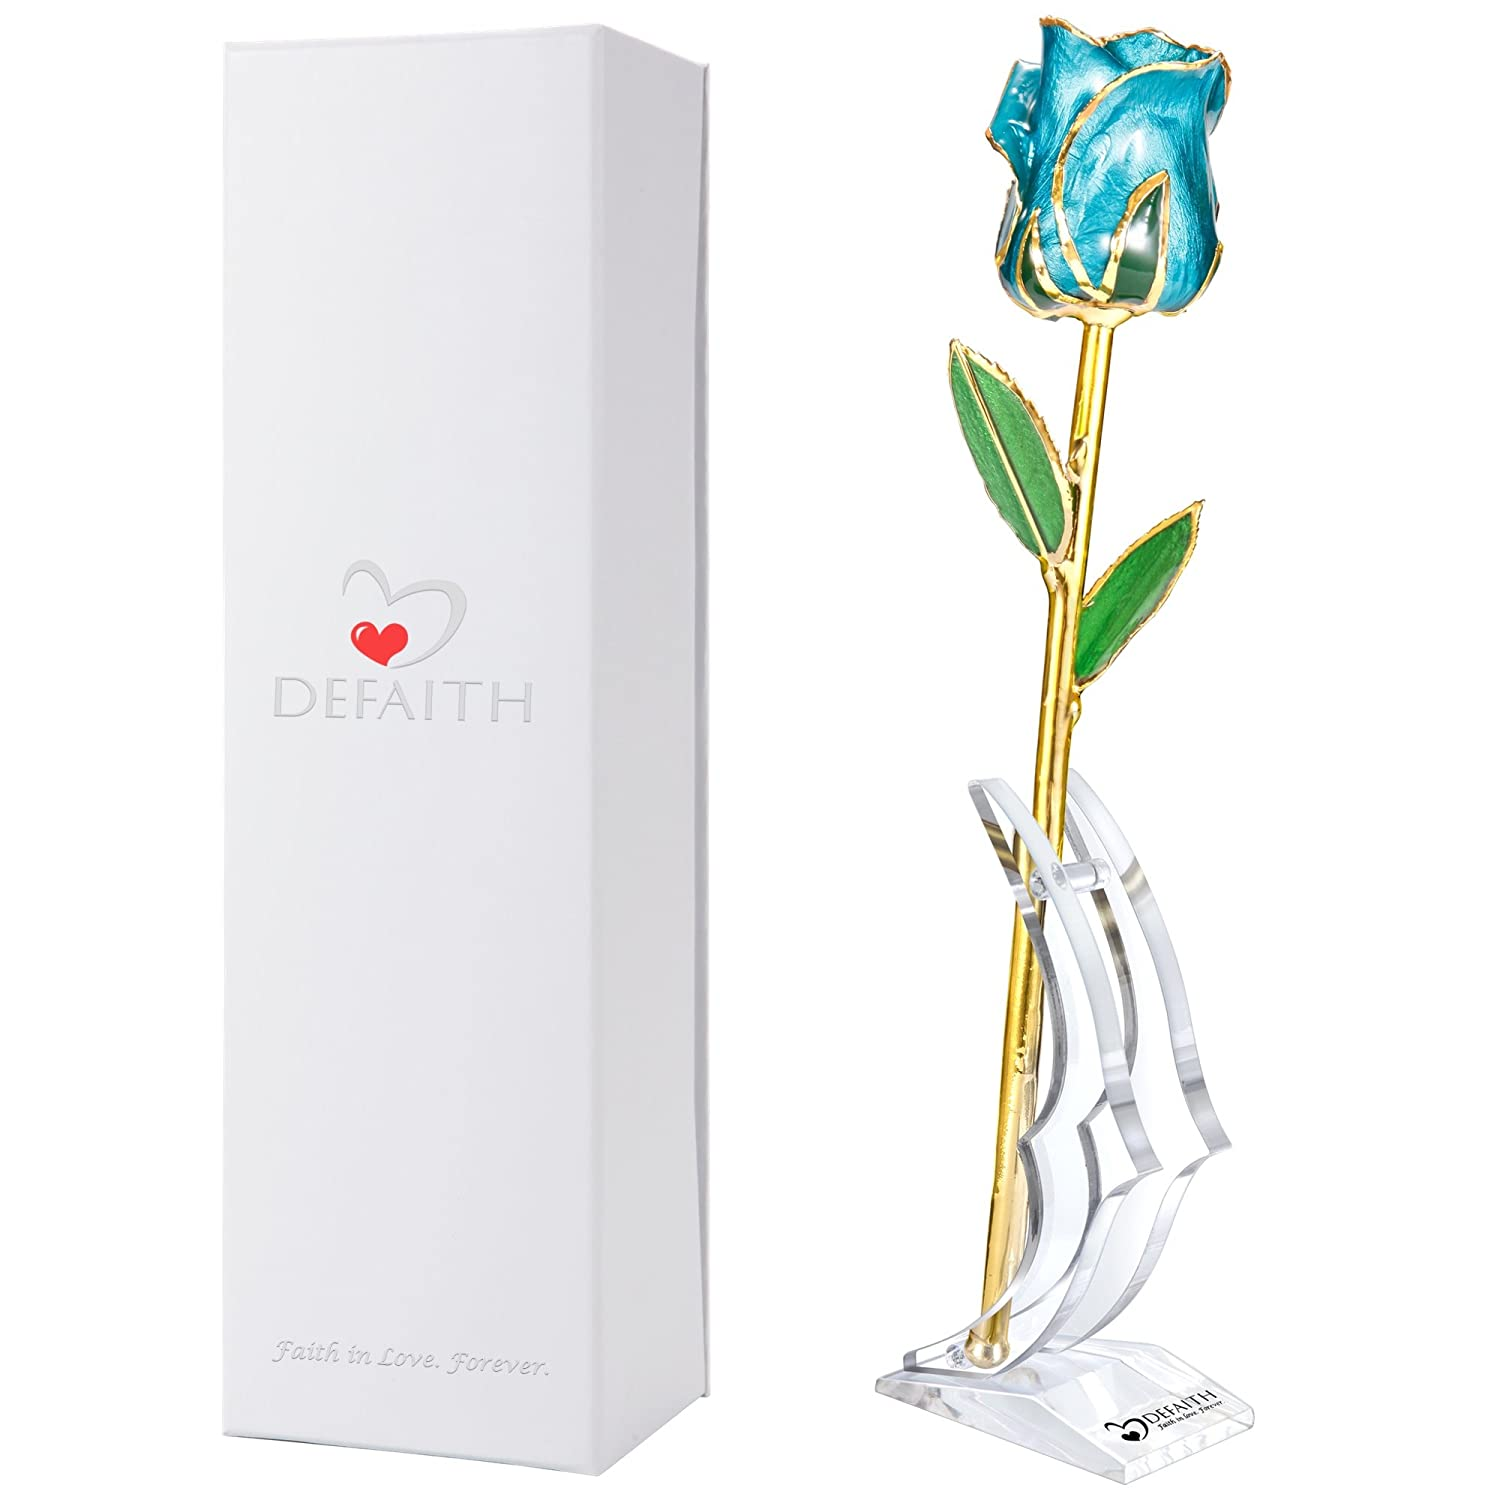 (Original Fresh Cut Rose Dipped in Gold Pearl Teal Blue) DeFaith Original 24K Gold Rose, Unique Anniversary Gifts for Mother Her Women Wife Girlfriend, Made from Real Fresh-Cut Rose with Stand Pearl Teal Blue B078ZTB1QP Original Fresh Cut Rose Dipped in Gold Pearl Teal Blue